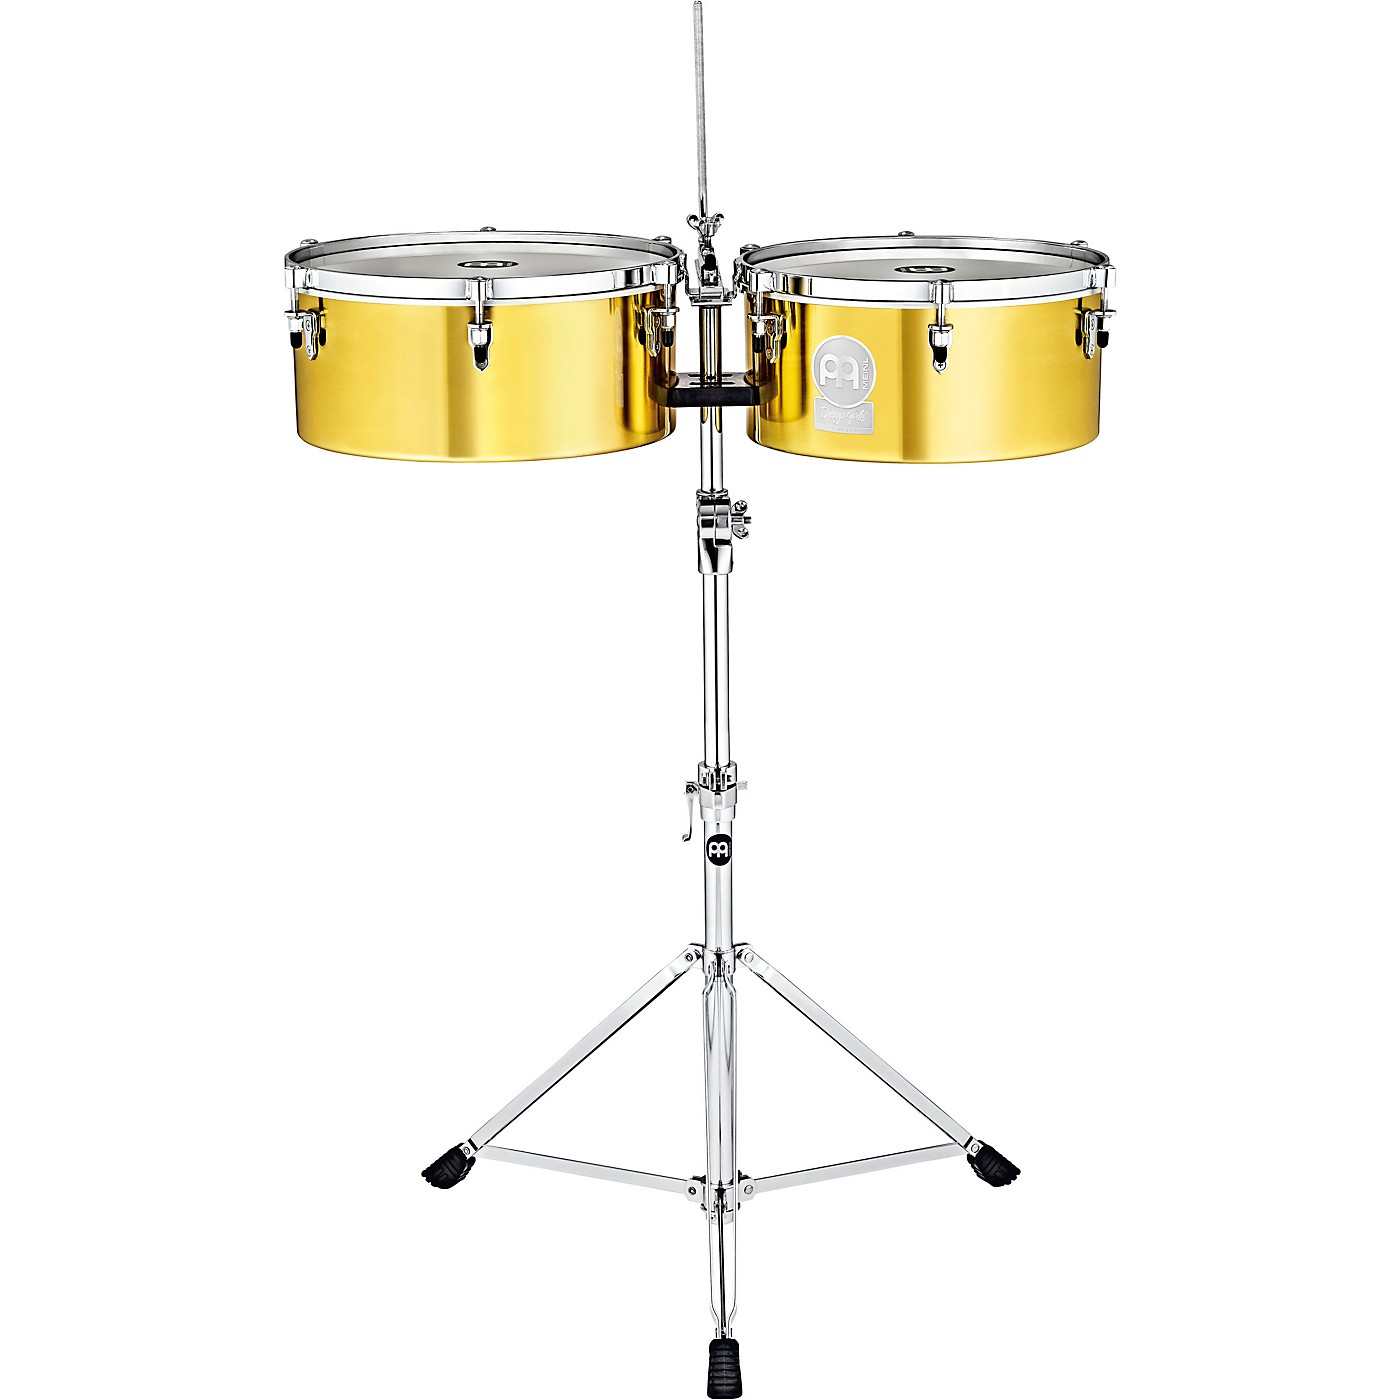 Meinl Artist Series Timbales Diego Galé thumbnail